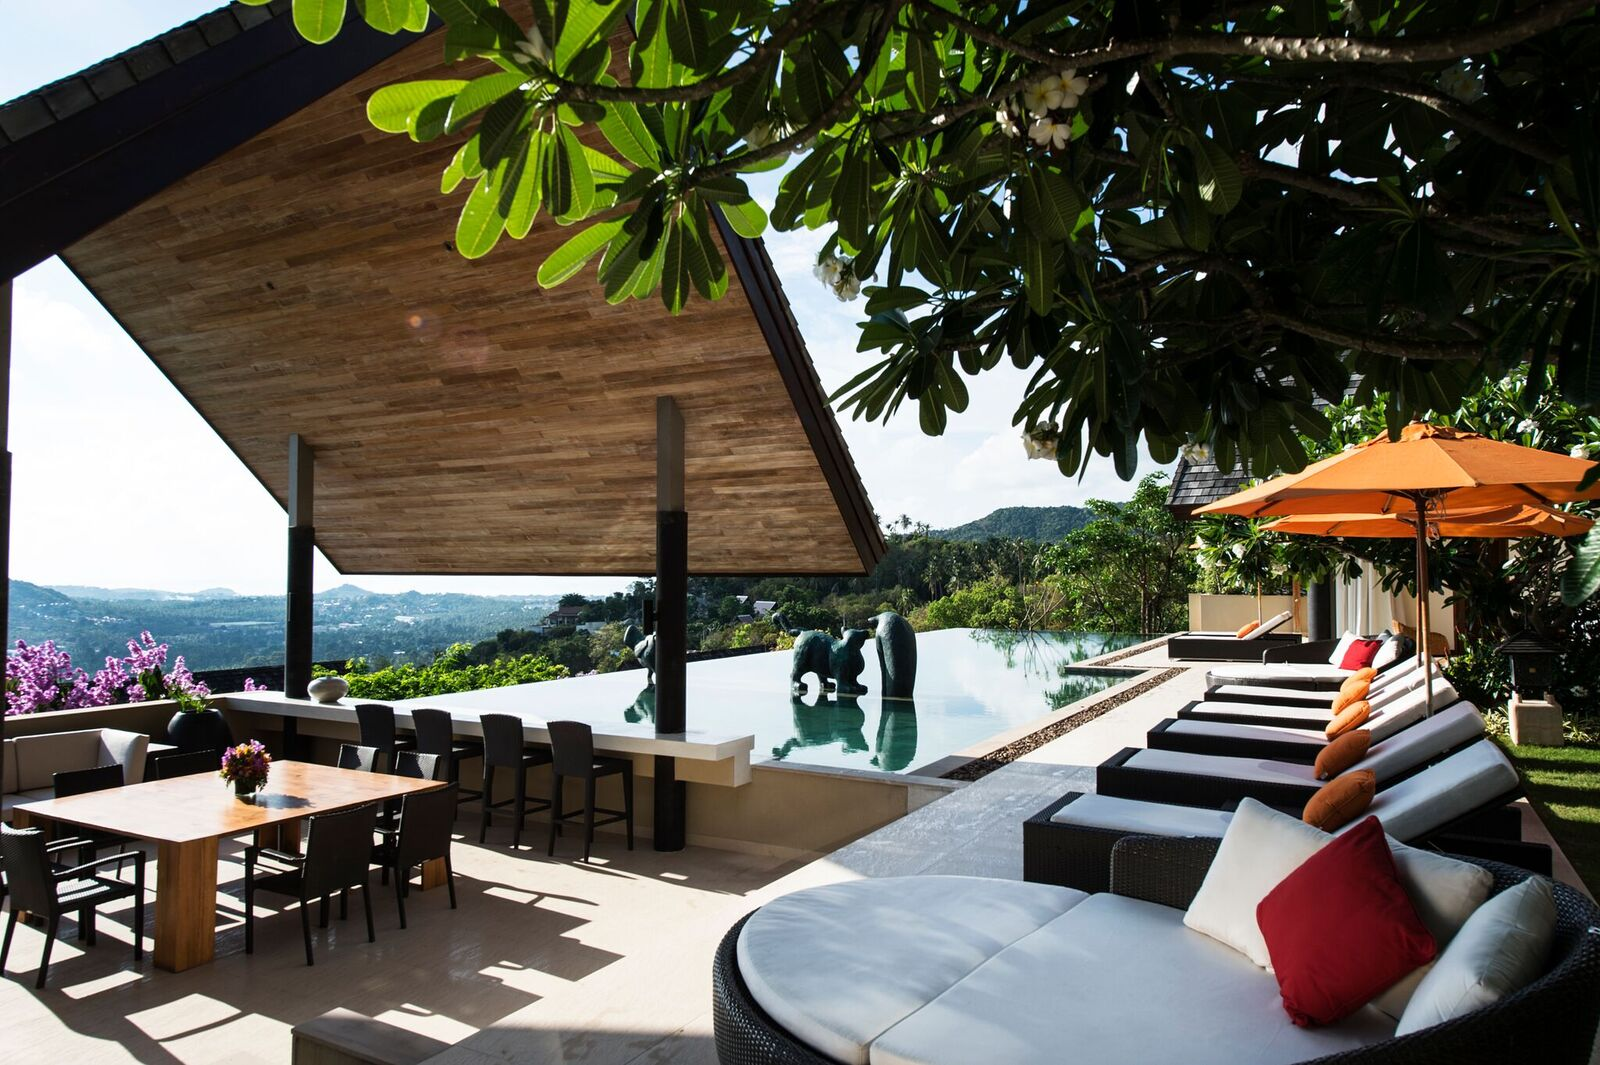 4 Bedroom Sea View Villa with Infinity Pool at Bophut Ko Samui